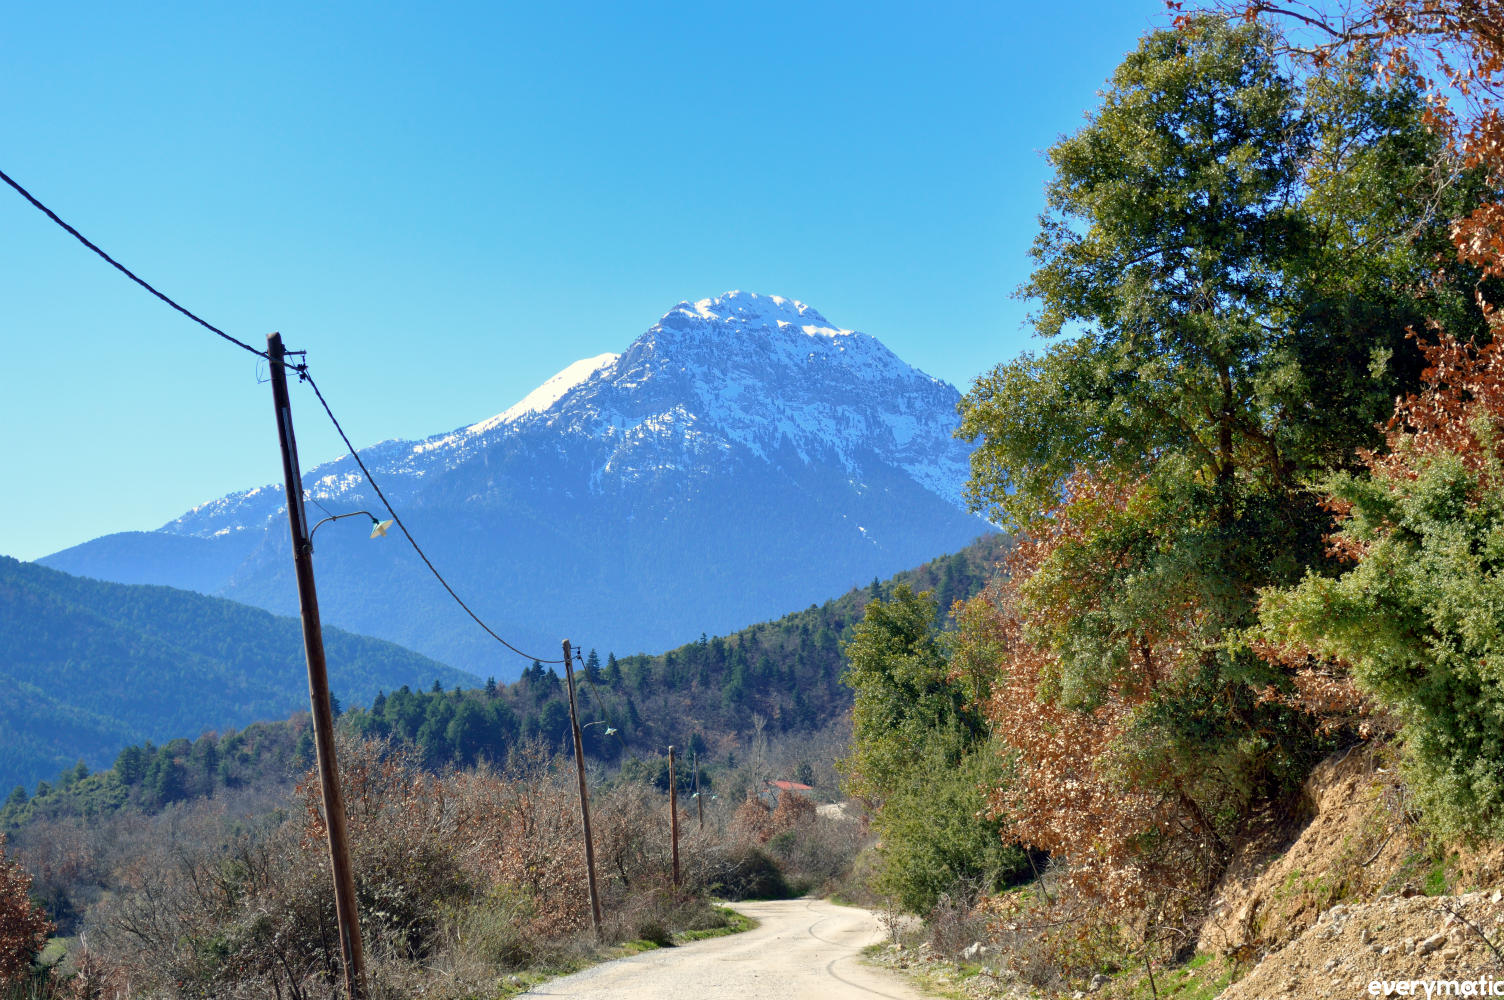 Snow-capped, in the Peloponnese near Goura.